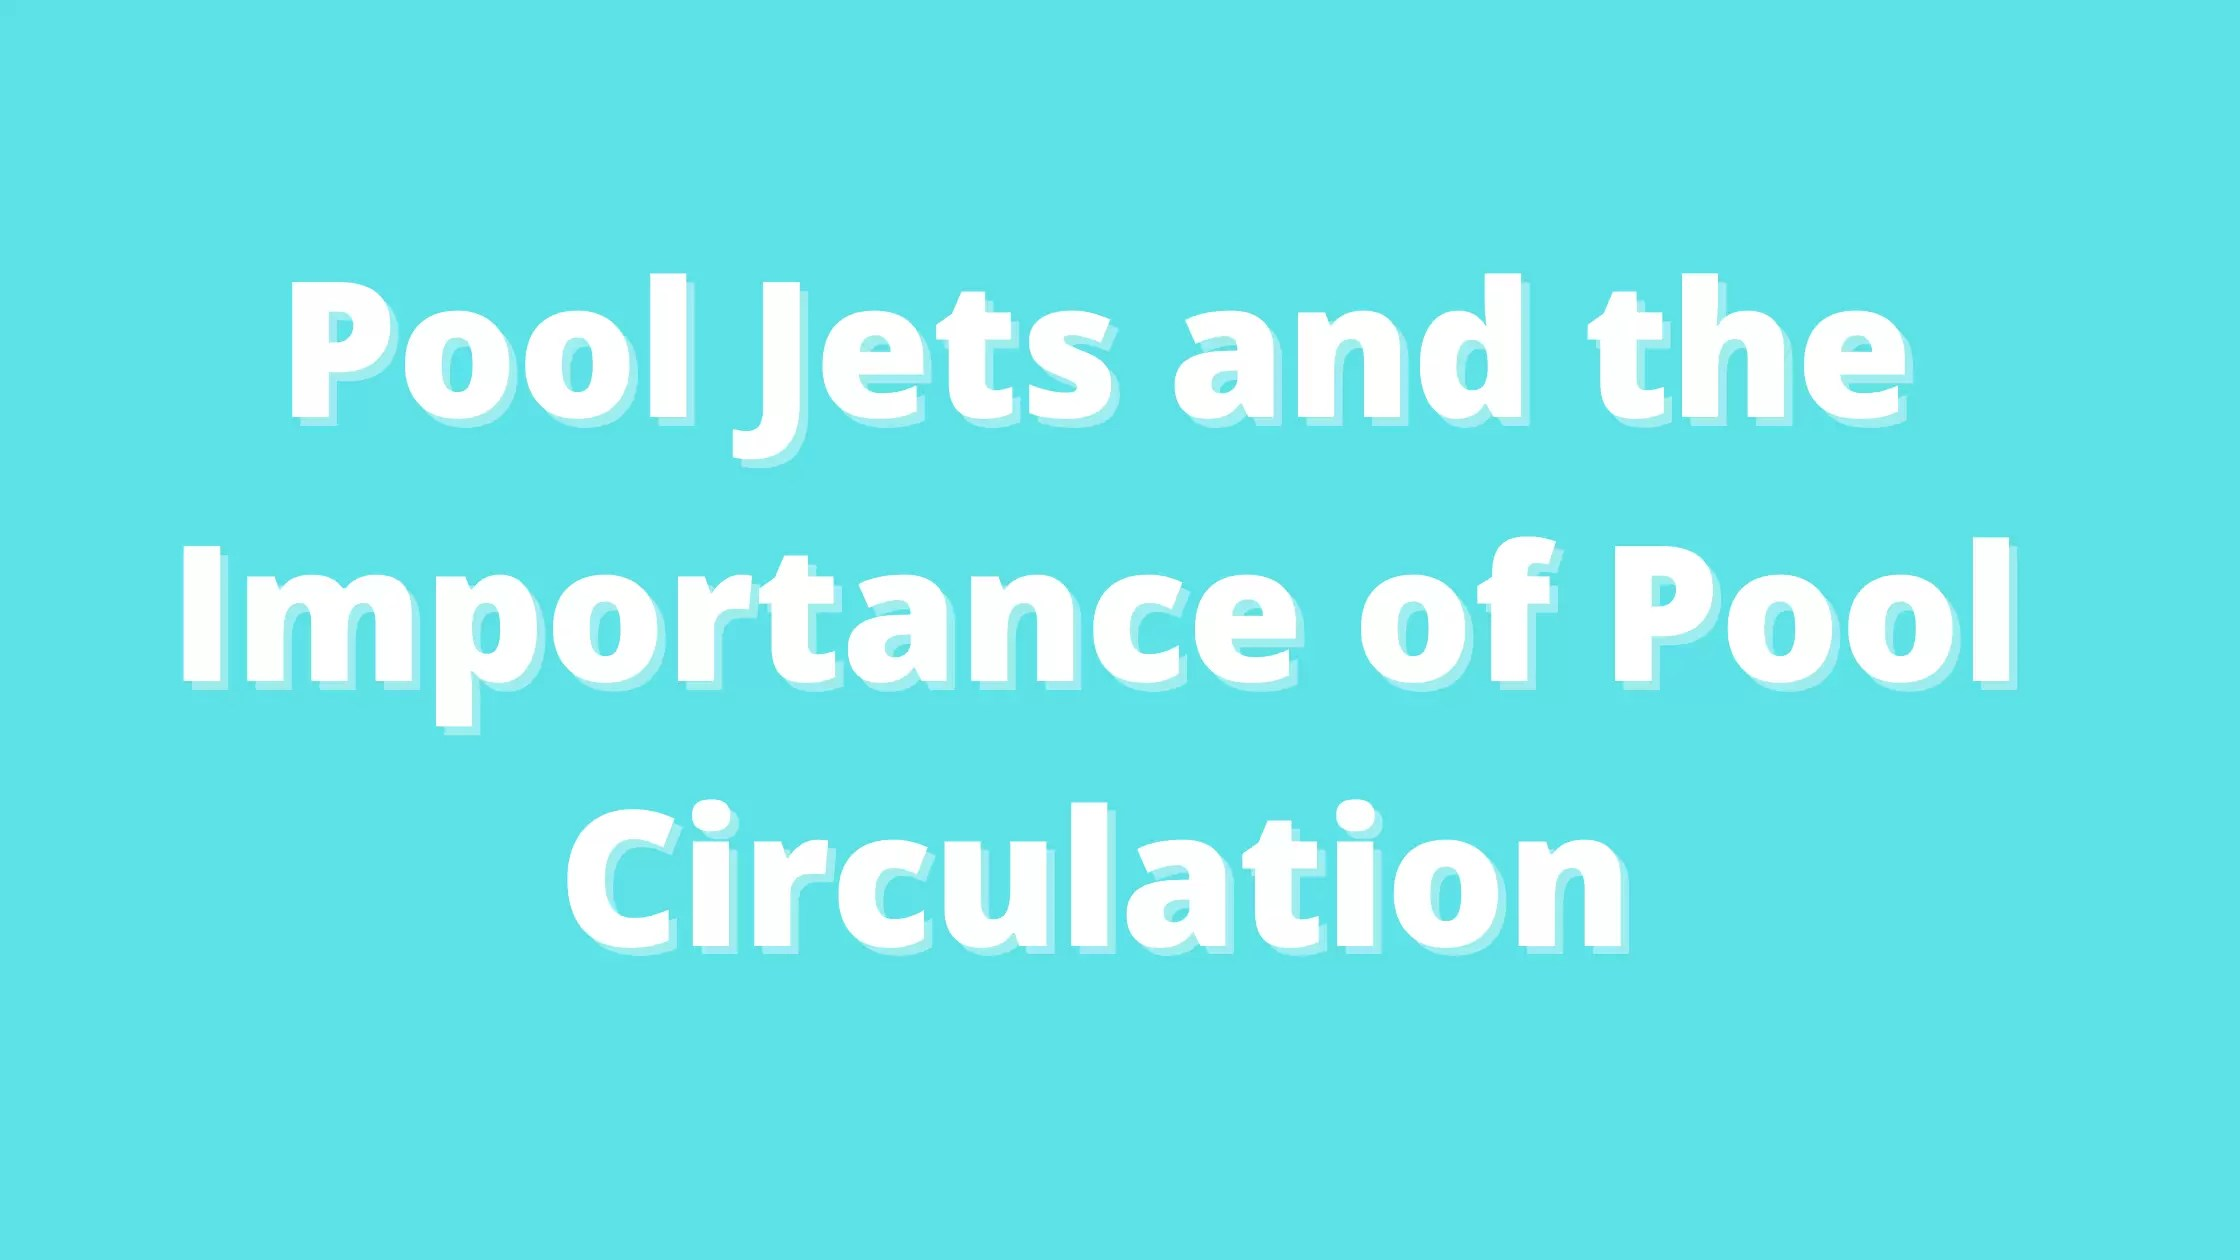 Importance of Pool Circulation